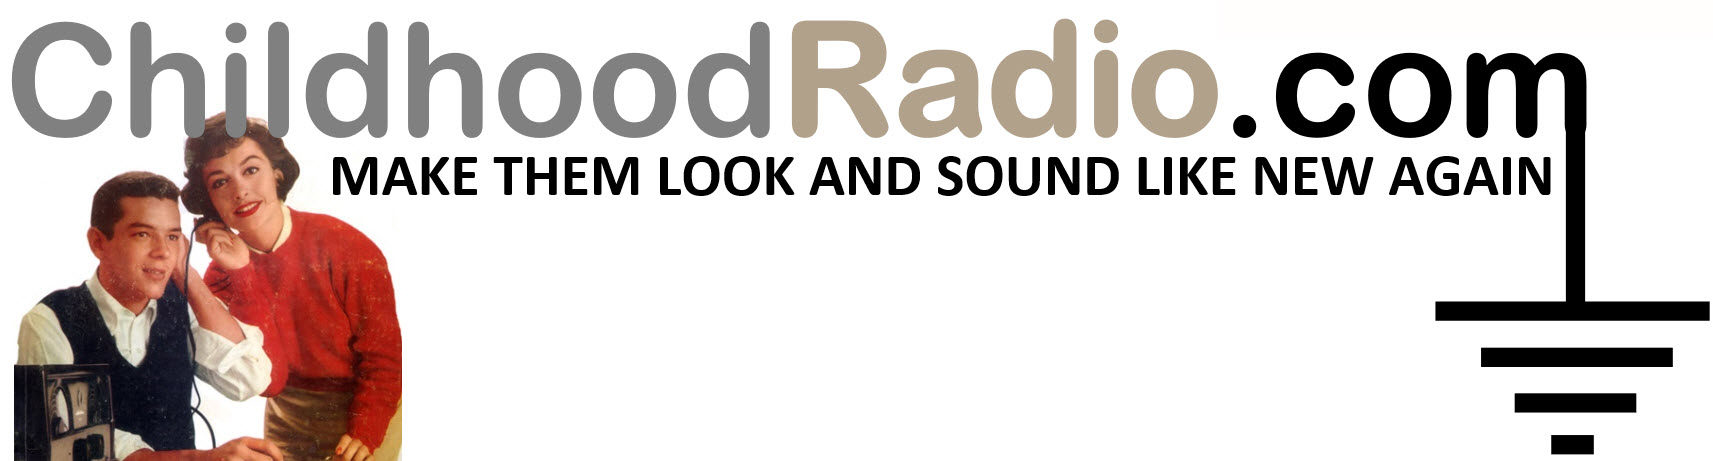 ChildhoodRadio